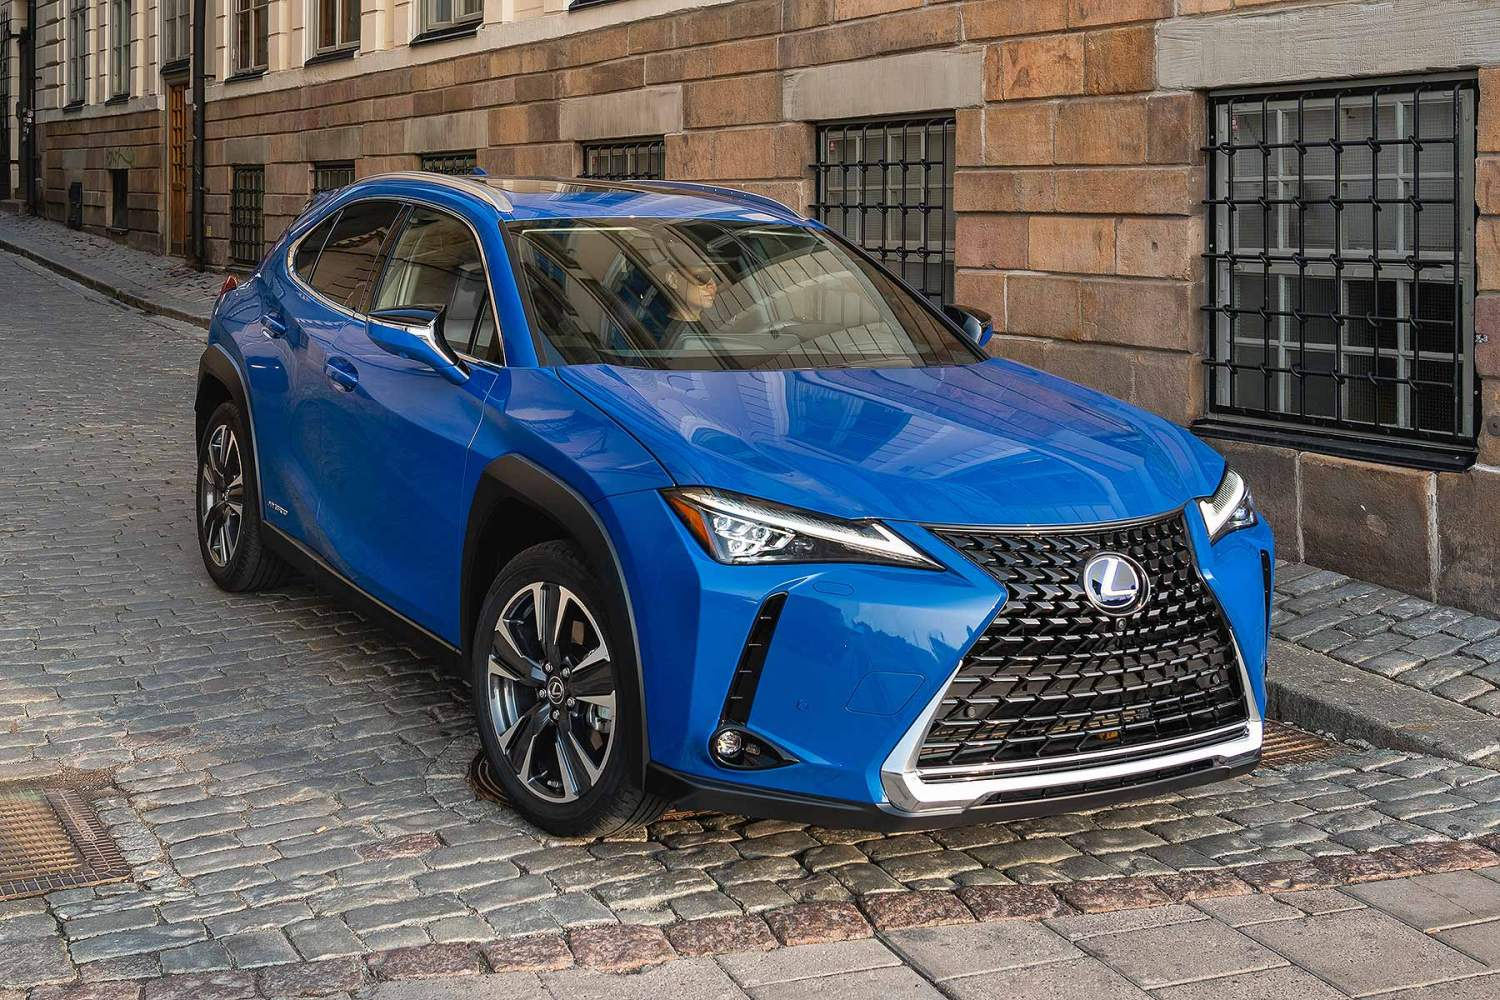 Lexus Ux Compact Suv Prices From Sub 30k Motoring Research